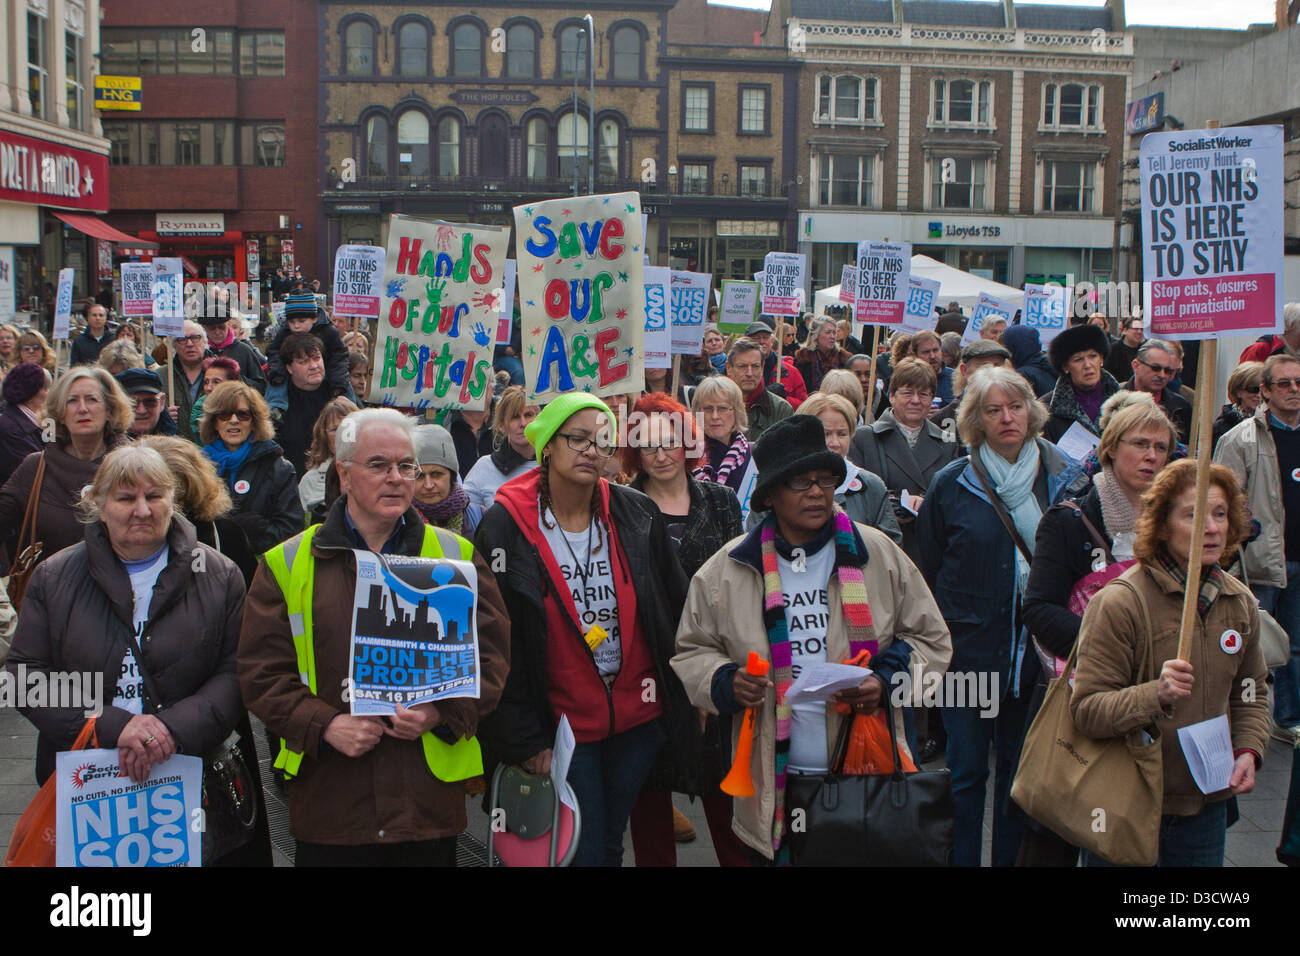 Hammersmith, London, UK. 16th February 2013. Around 200 people attend a rally as NHS announce closure of A&E - Stock Image